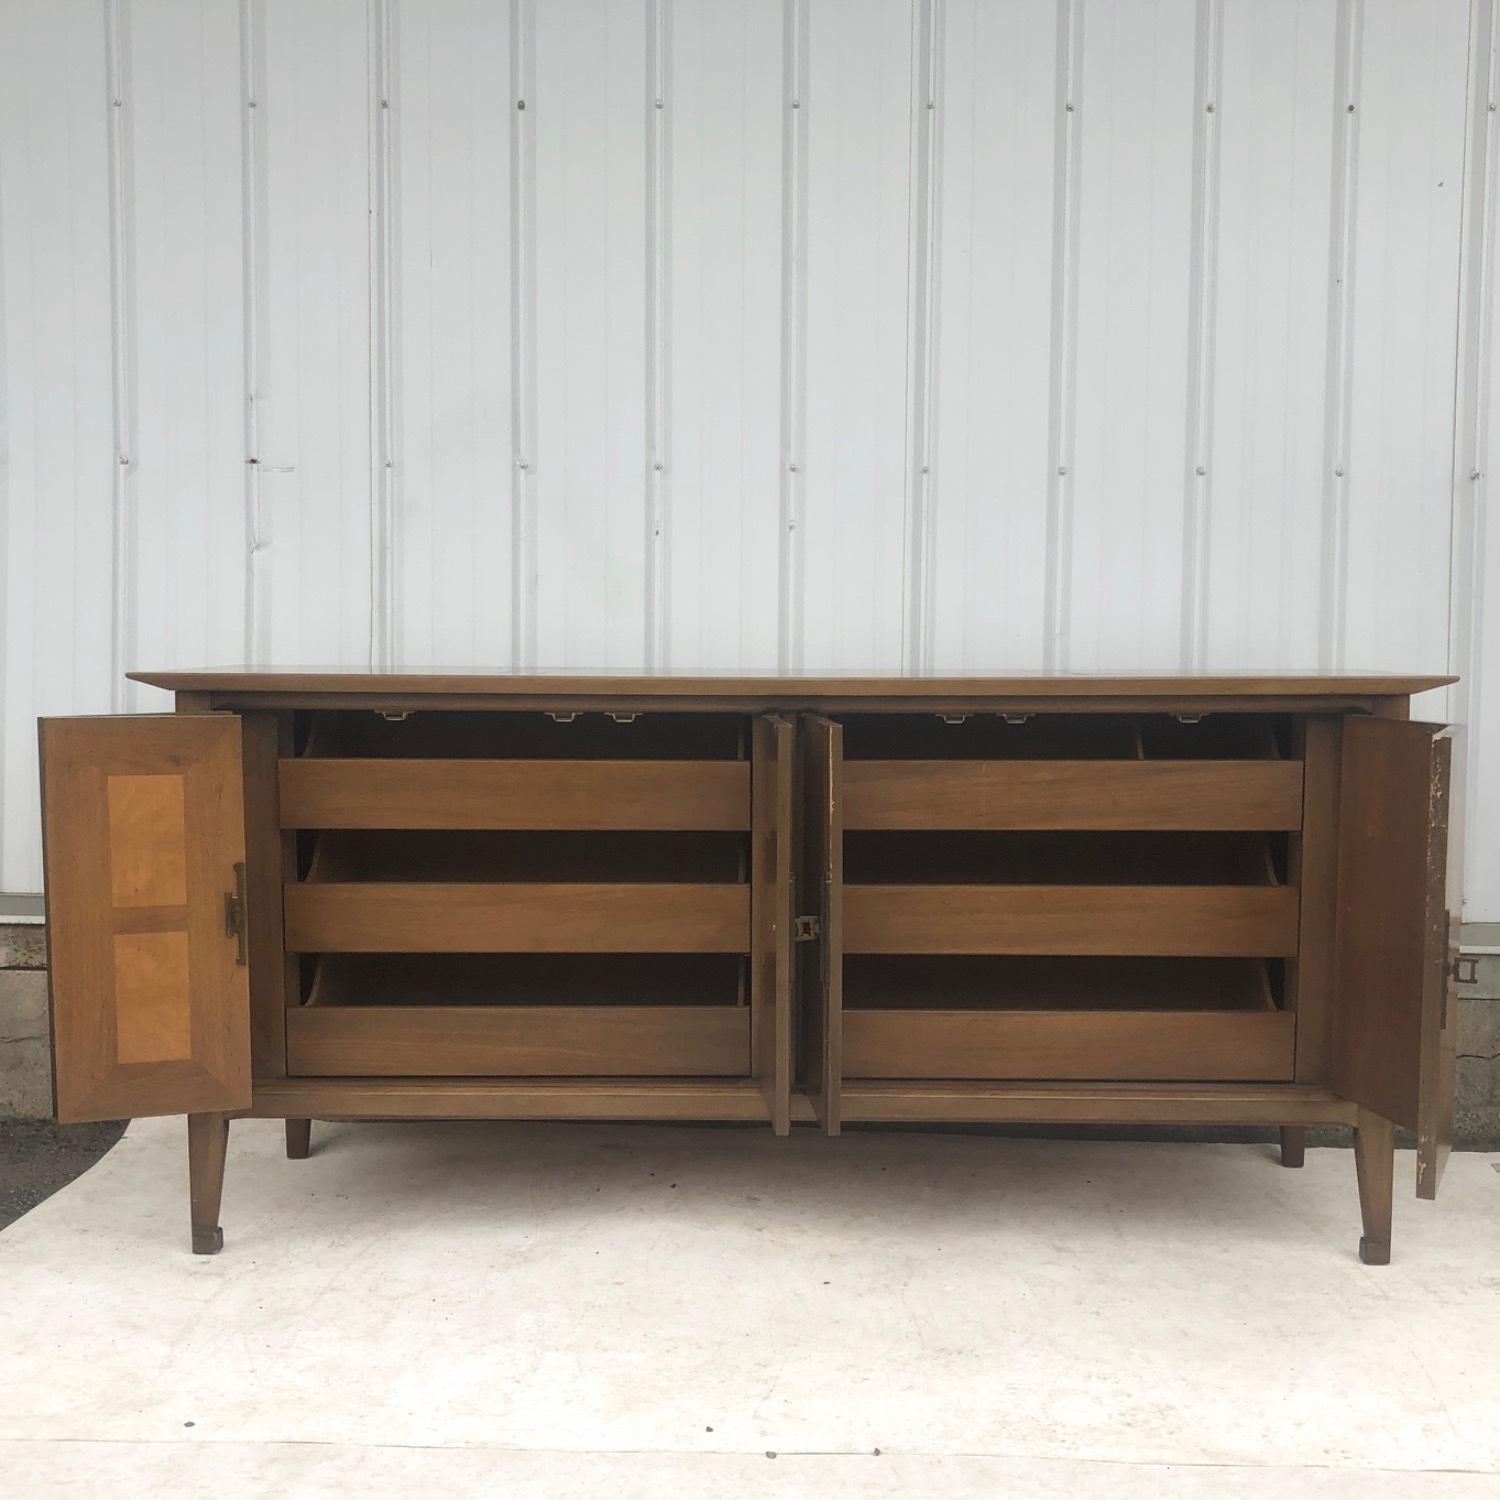 Mid-Century Bedroom Dresser by White Furniture - image-1